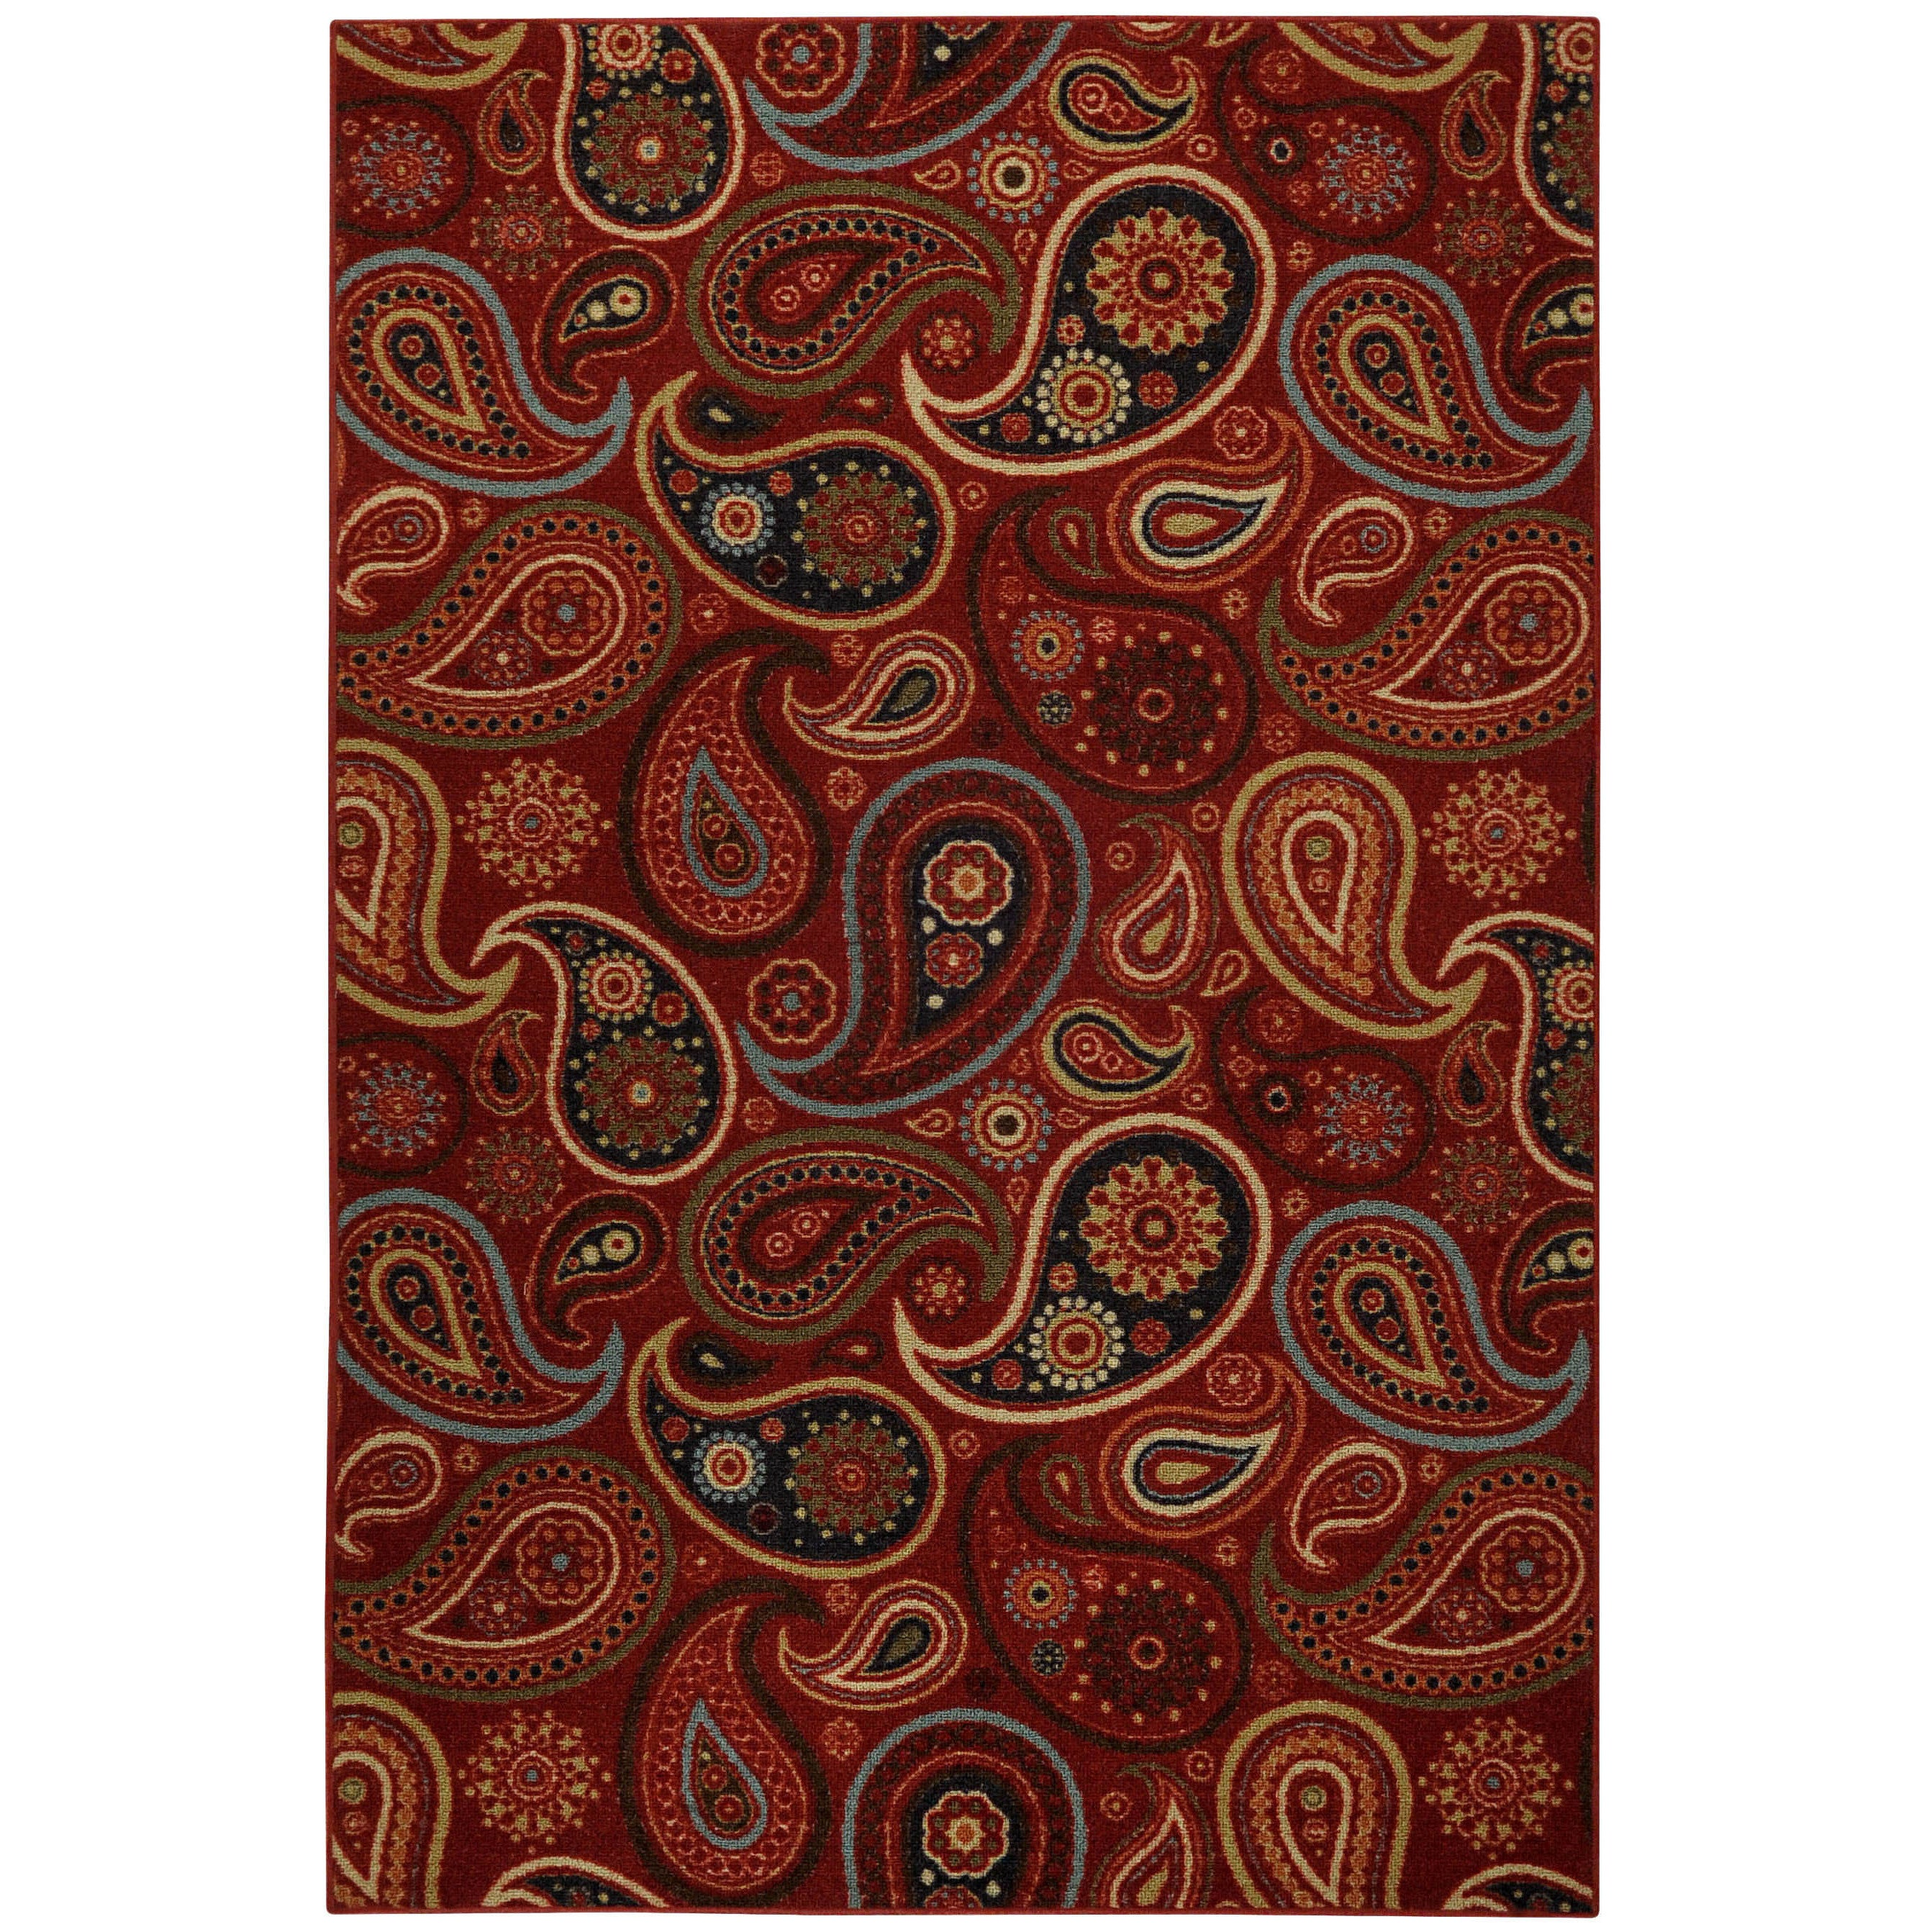 Rubber Back Red Paisley Floral Non-Skid Area Rug (3'3 x 5') at Sears.com